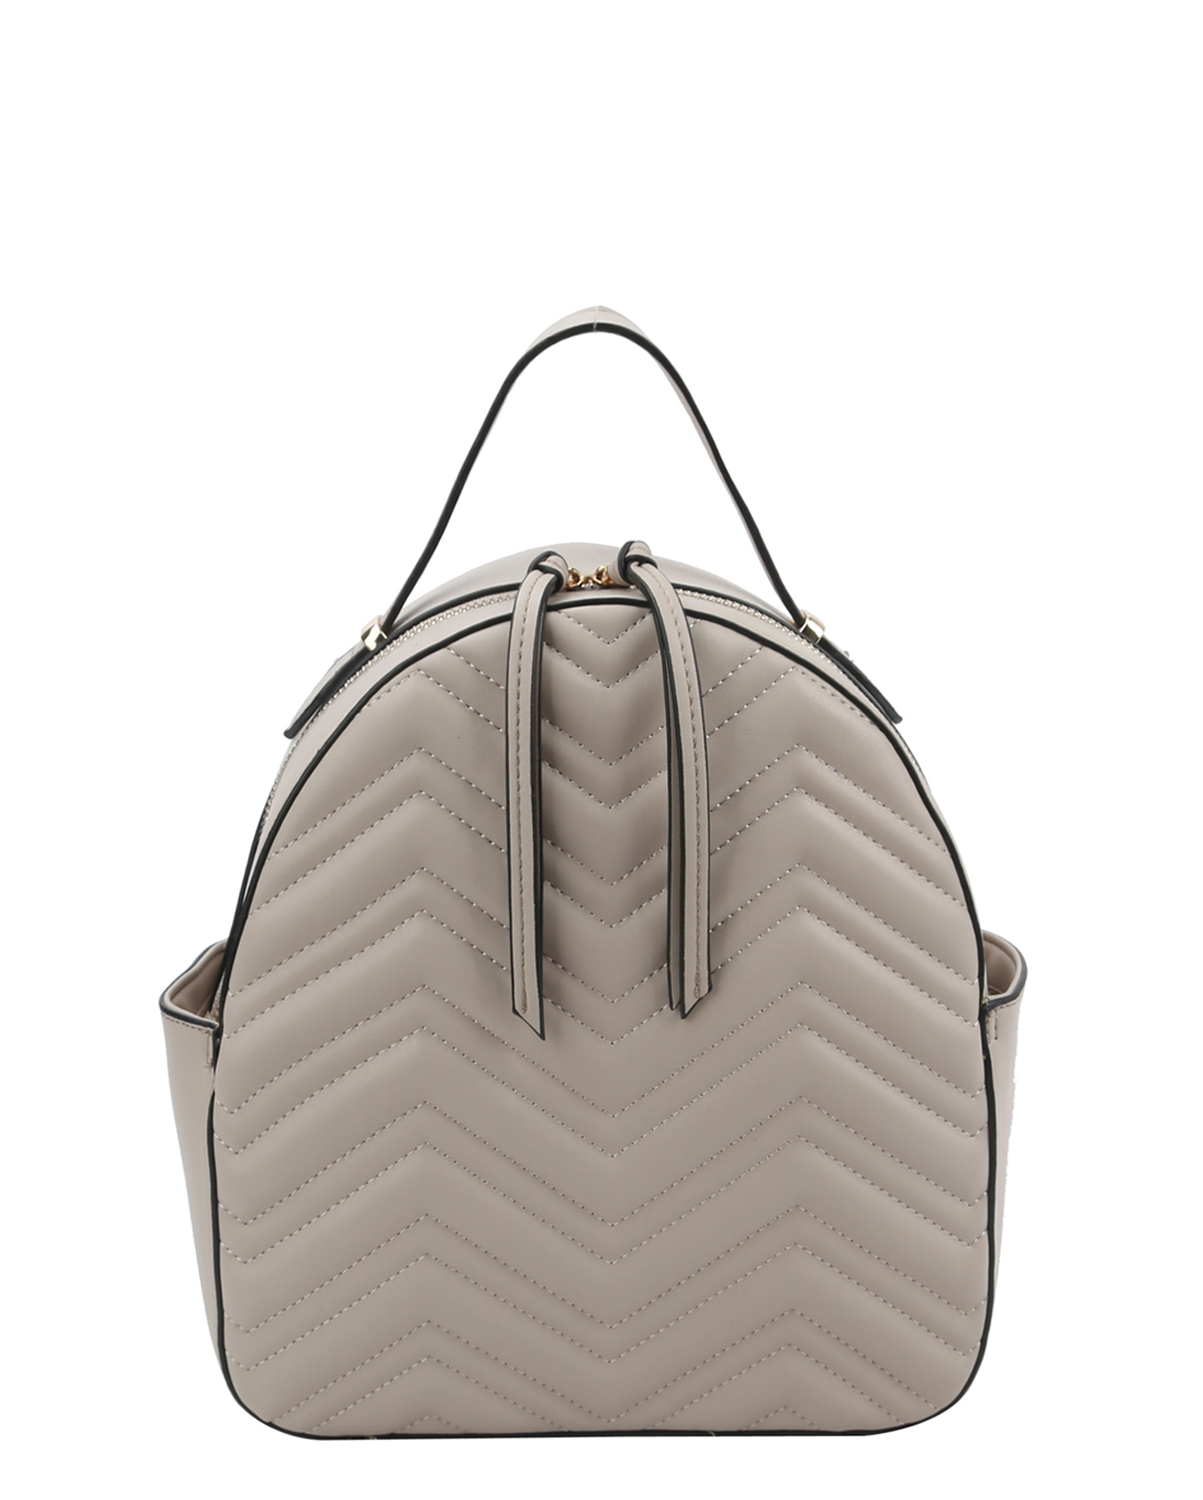 9c48664c2426 Get Incredible Discount Prices on our Wholesale Fashion Handbags Today!